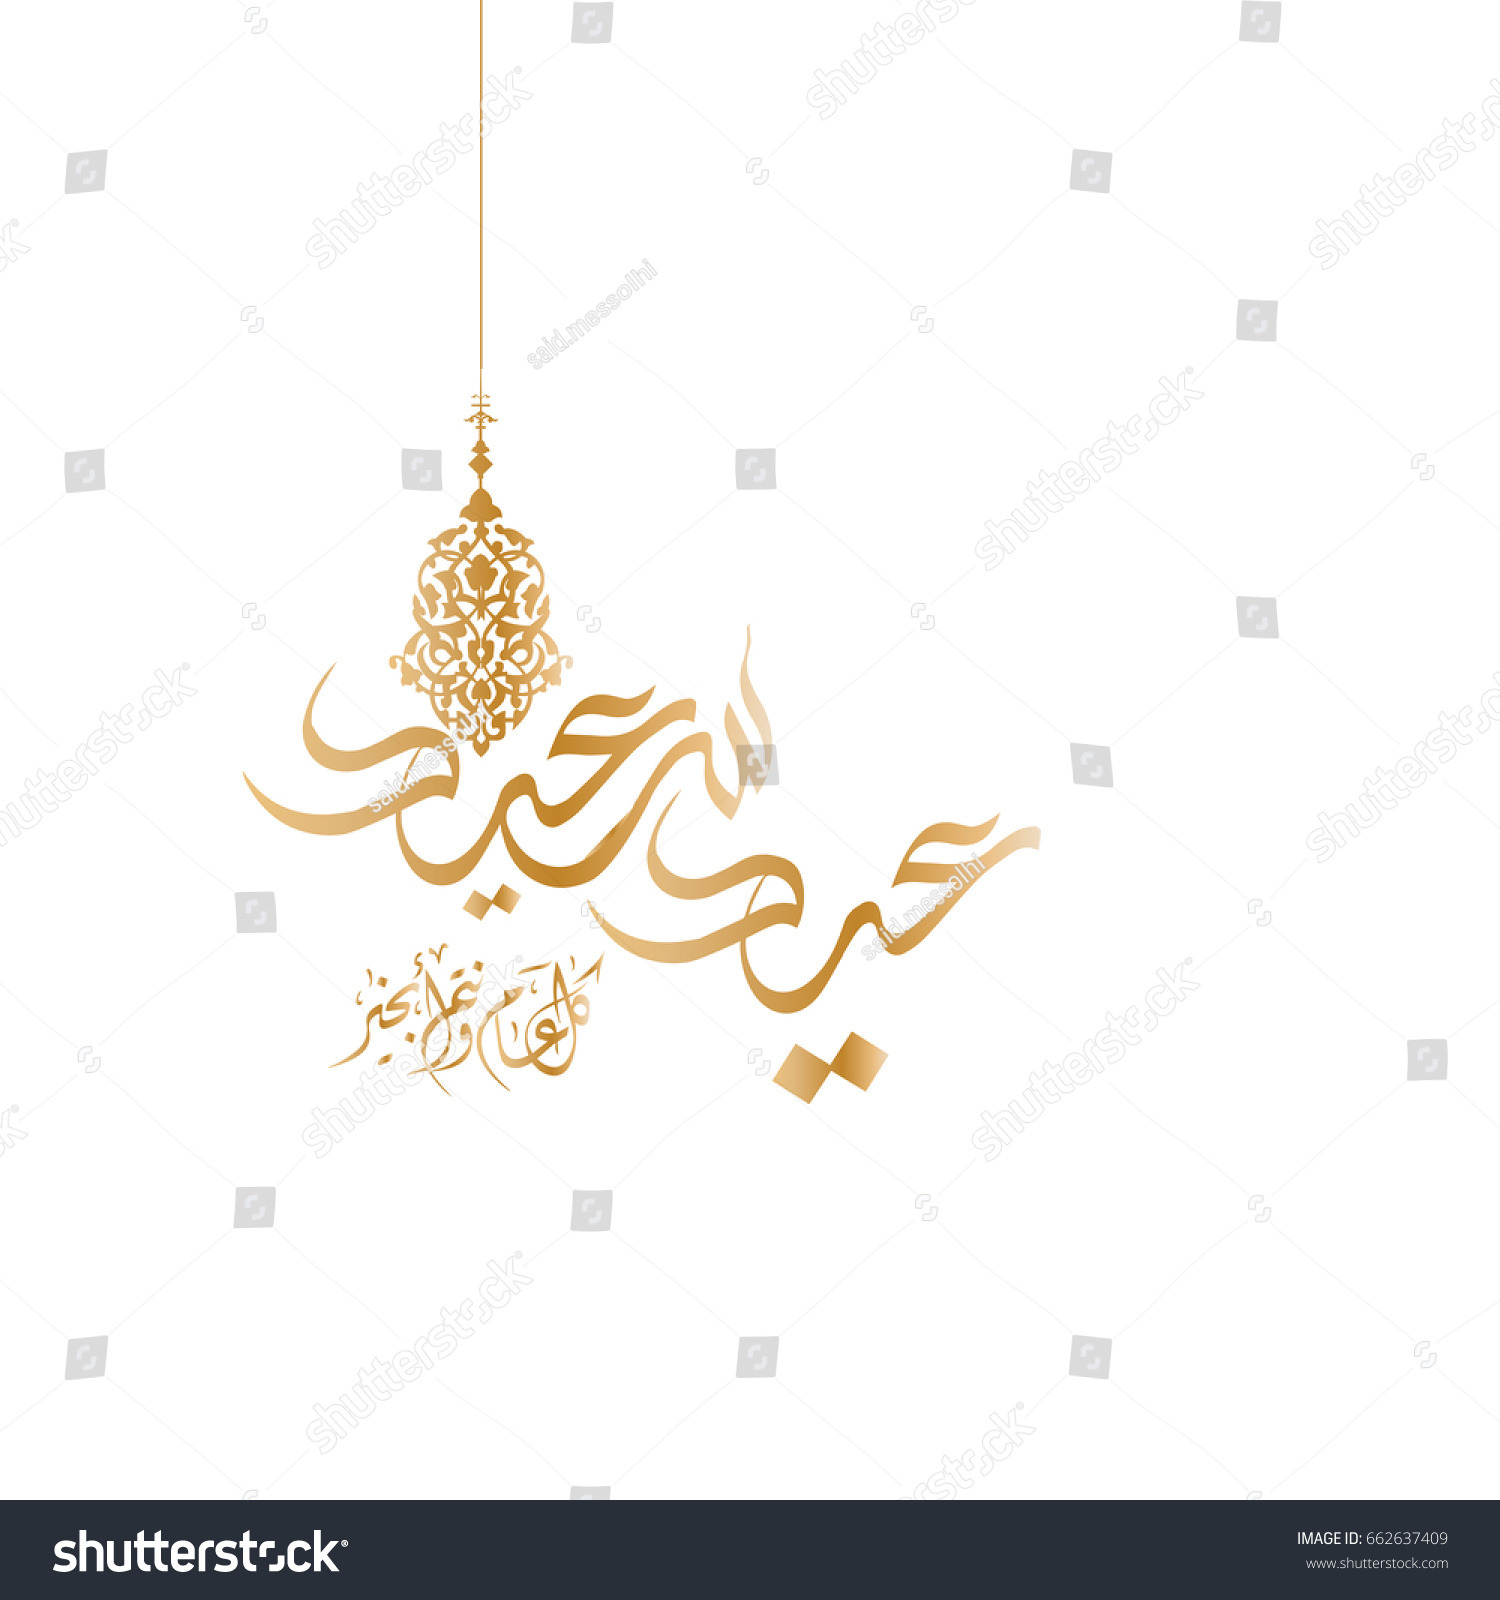 Popular Happy Eid Al-Fitr Decorations - stock-vector-greetings-card-on-the-occasion-of-eid-al-fitr-to-the-muslims-beautiful-islamic-background-662637409  Graphic_551911 .jpg